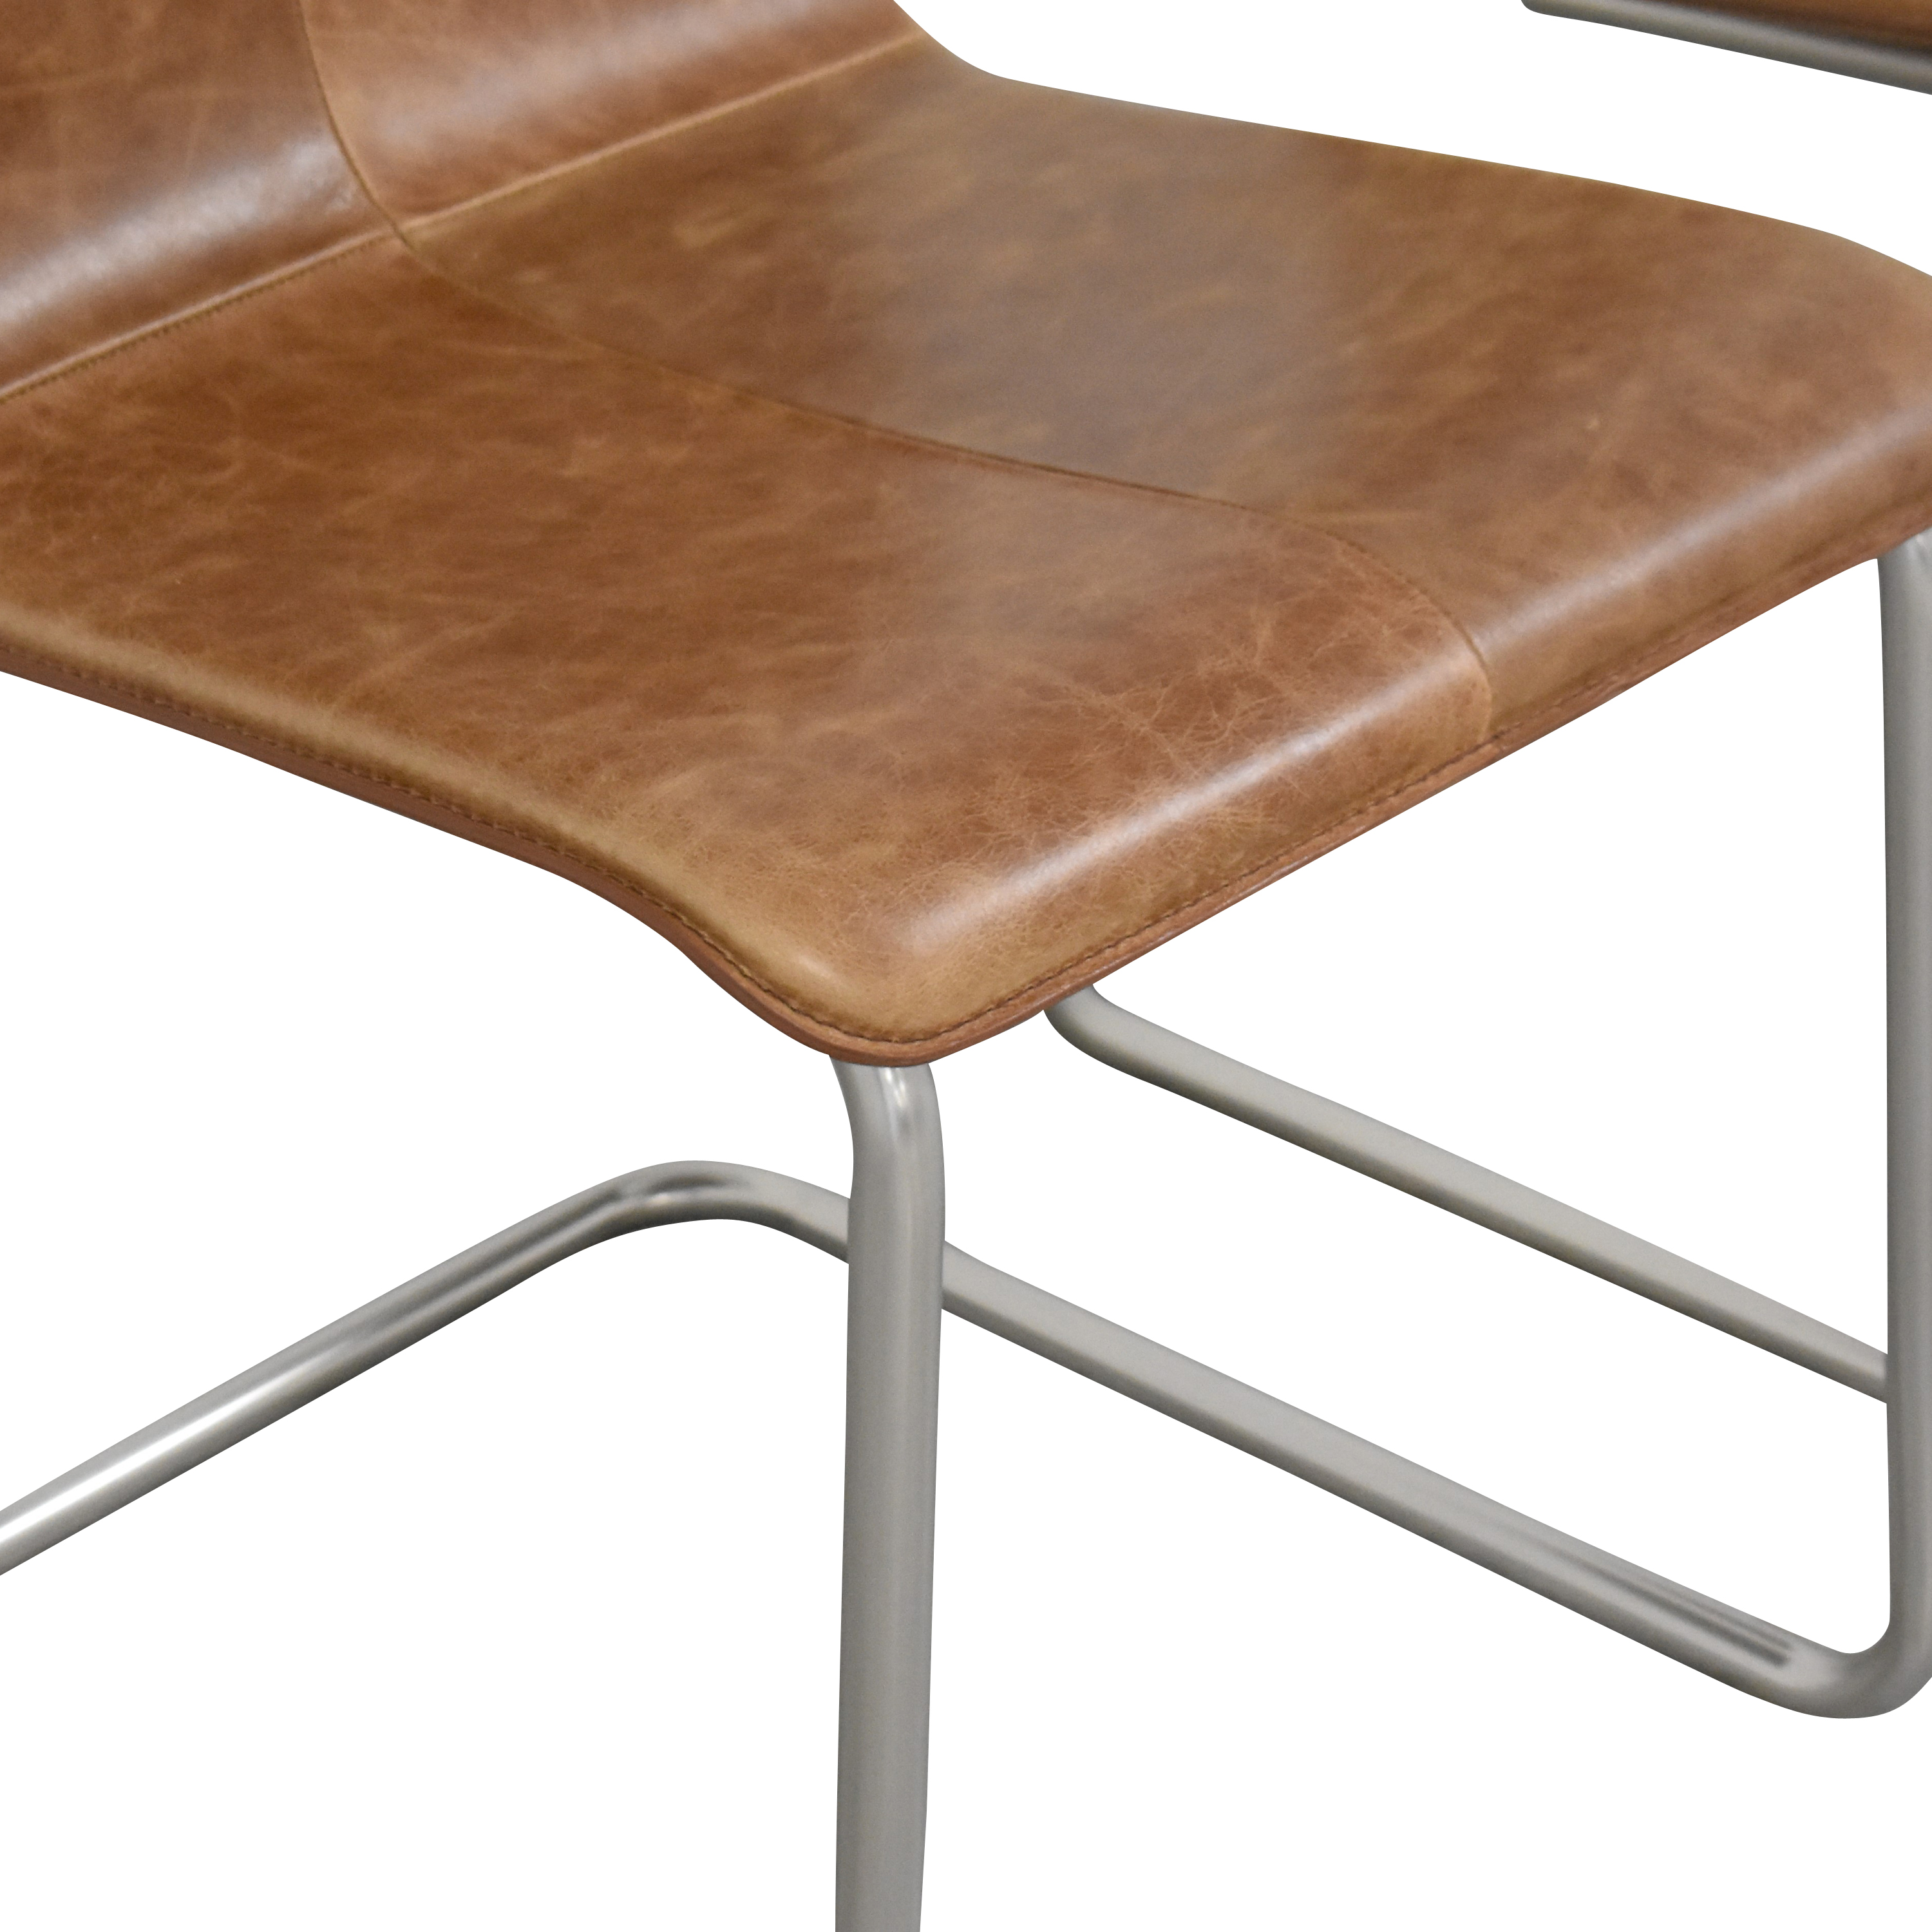 CB2 Pony Dining Chairs sale